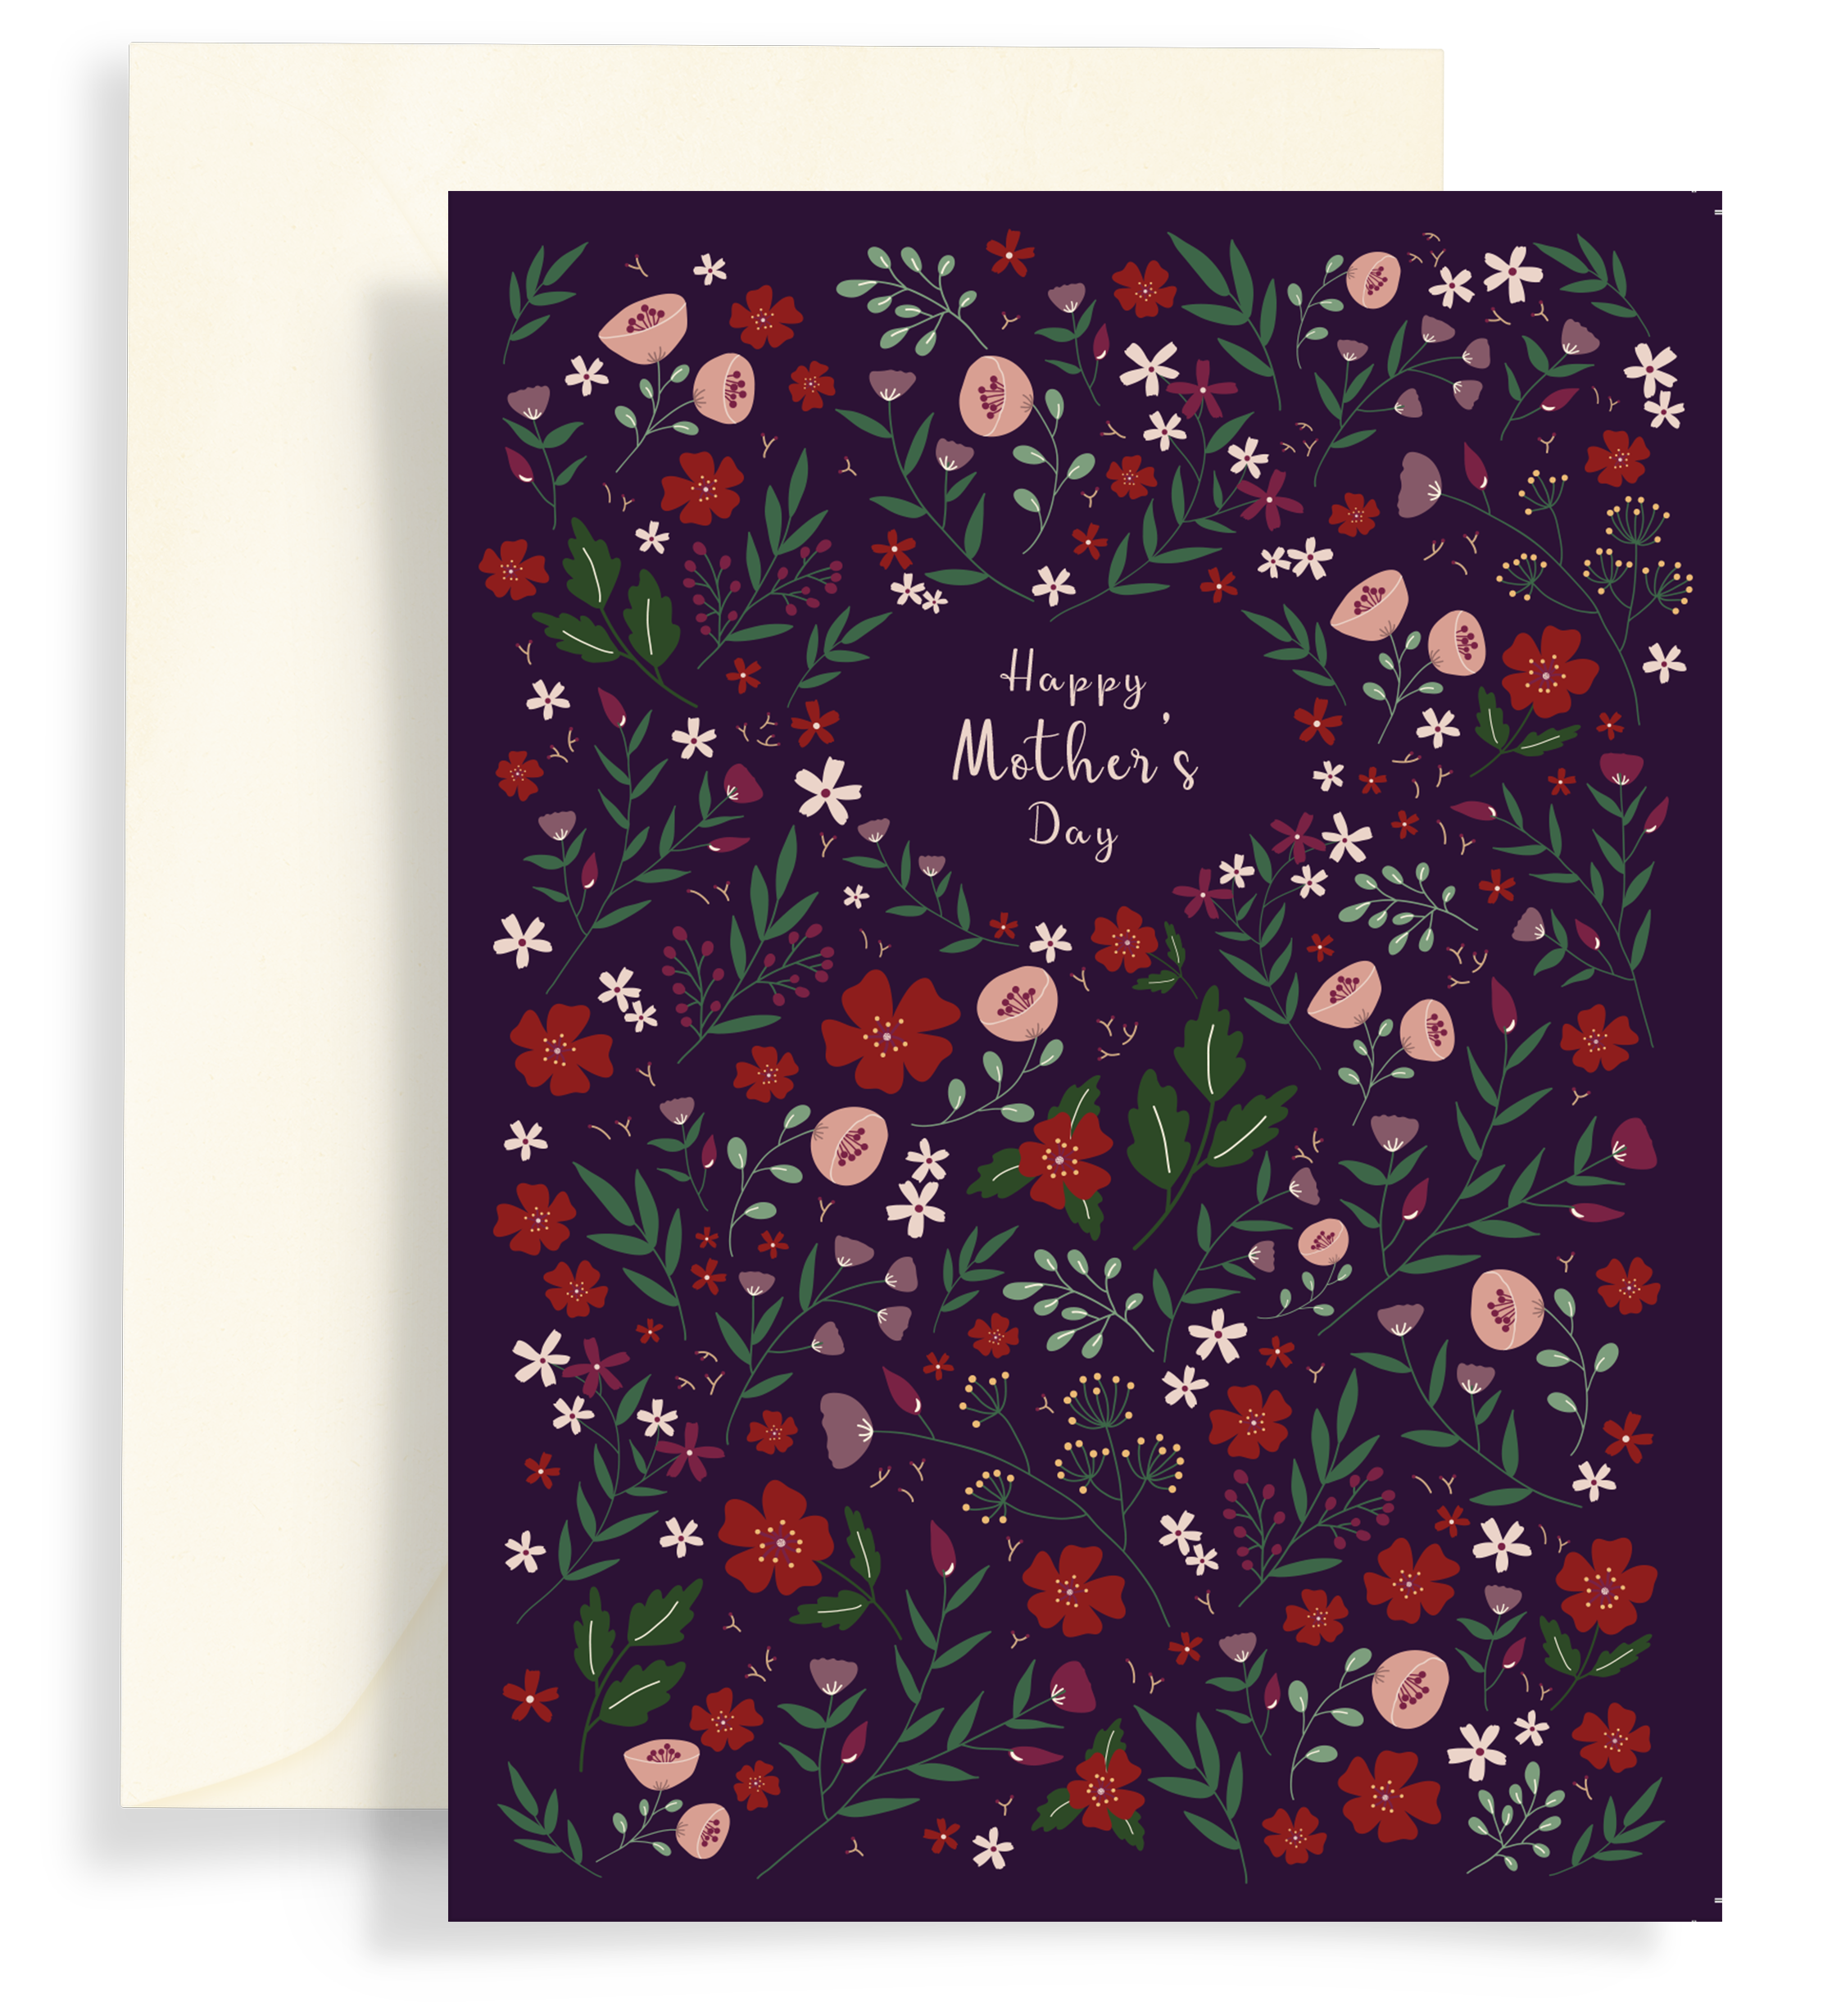 Illustrated greeting card with a beautiful floral pattern on a dark plum background. Text says 'happy mother's day'